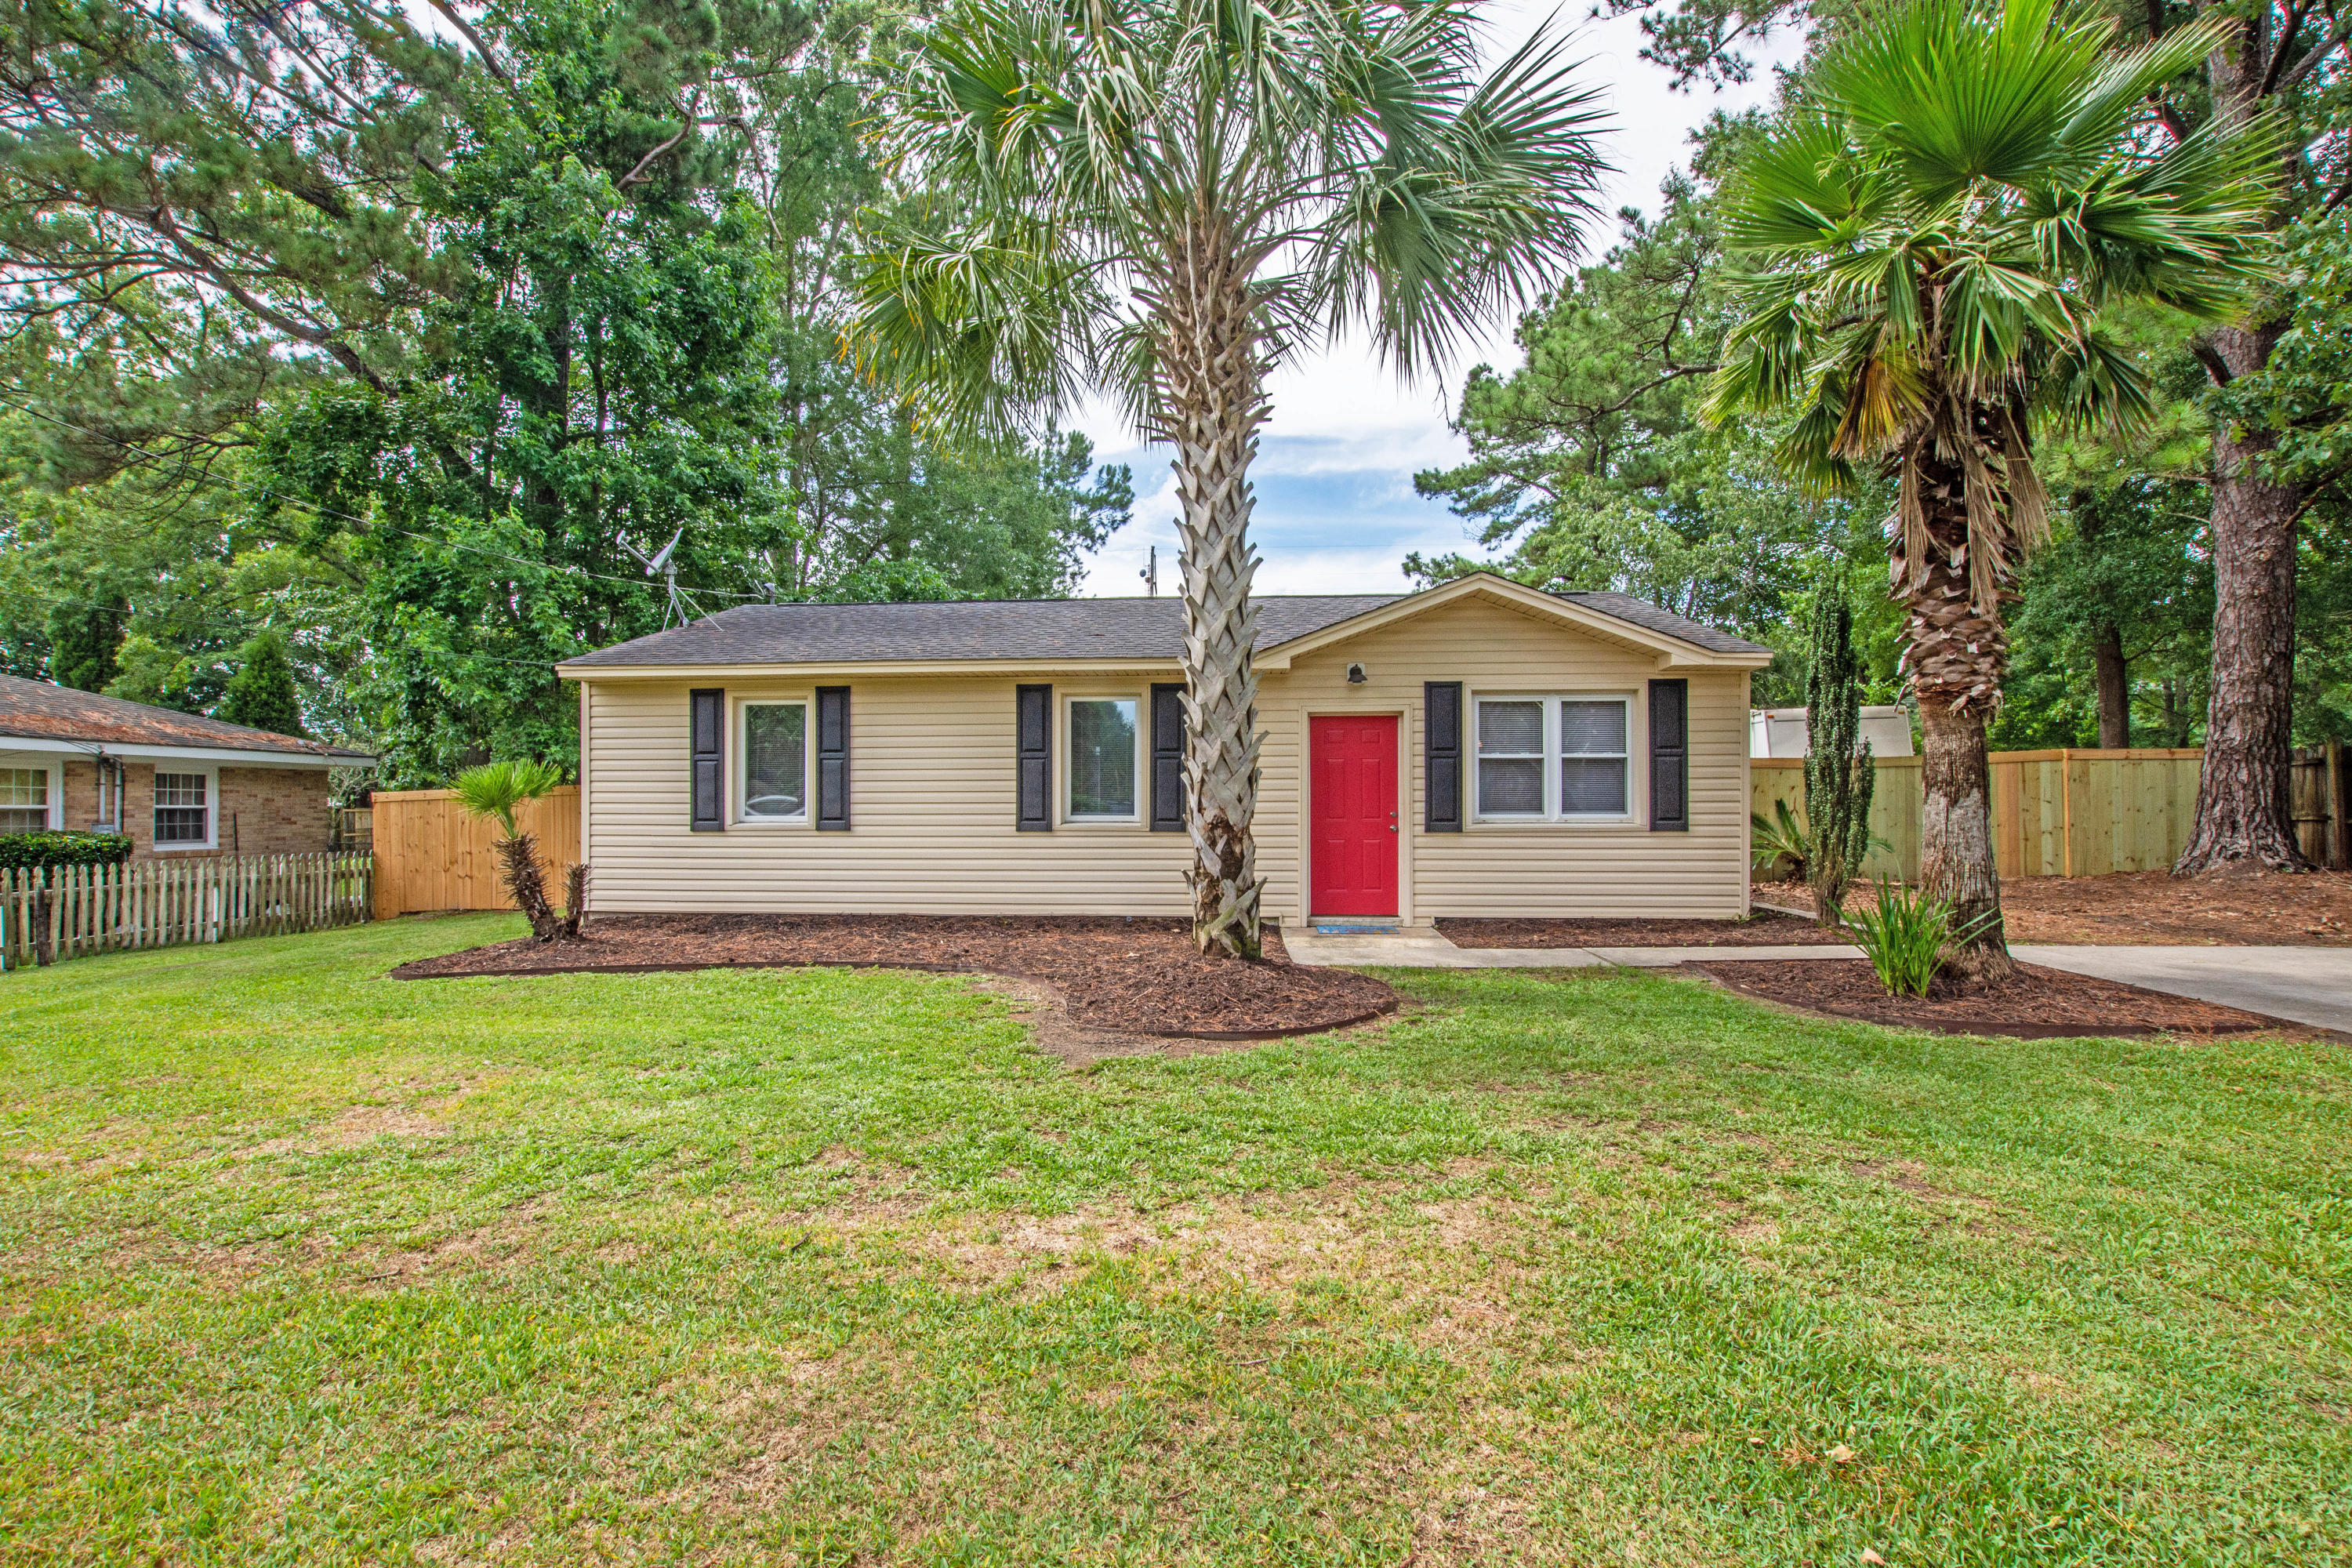 Pineview Terrace Homes For Sale - 232 Holly, Goose Creek, SC - 17